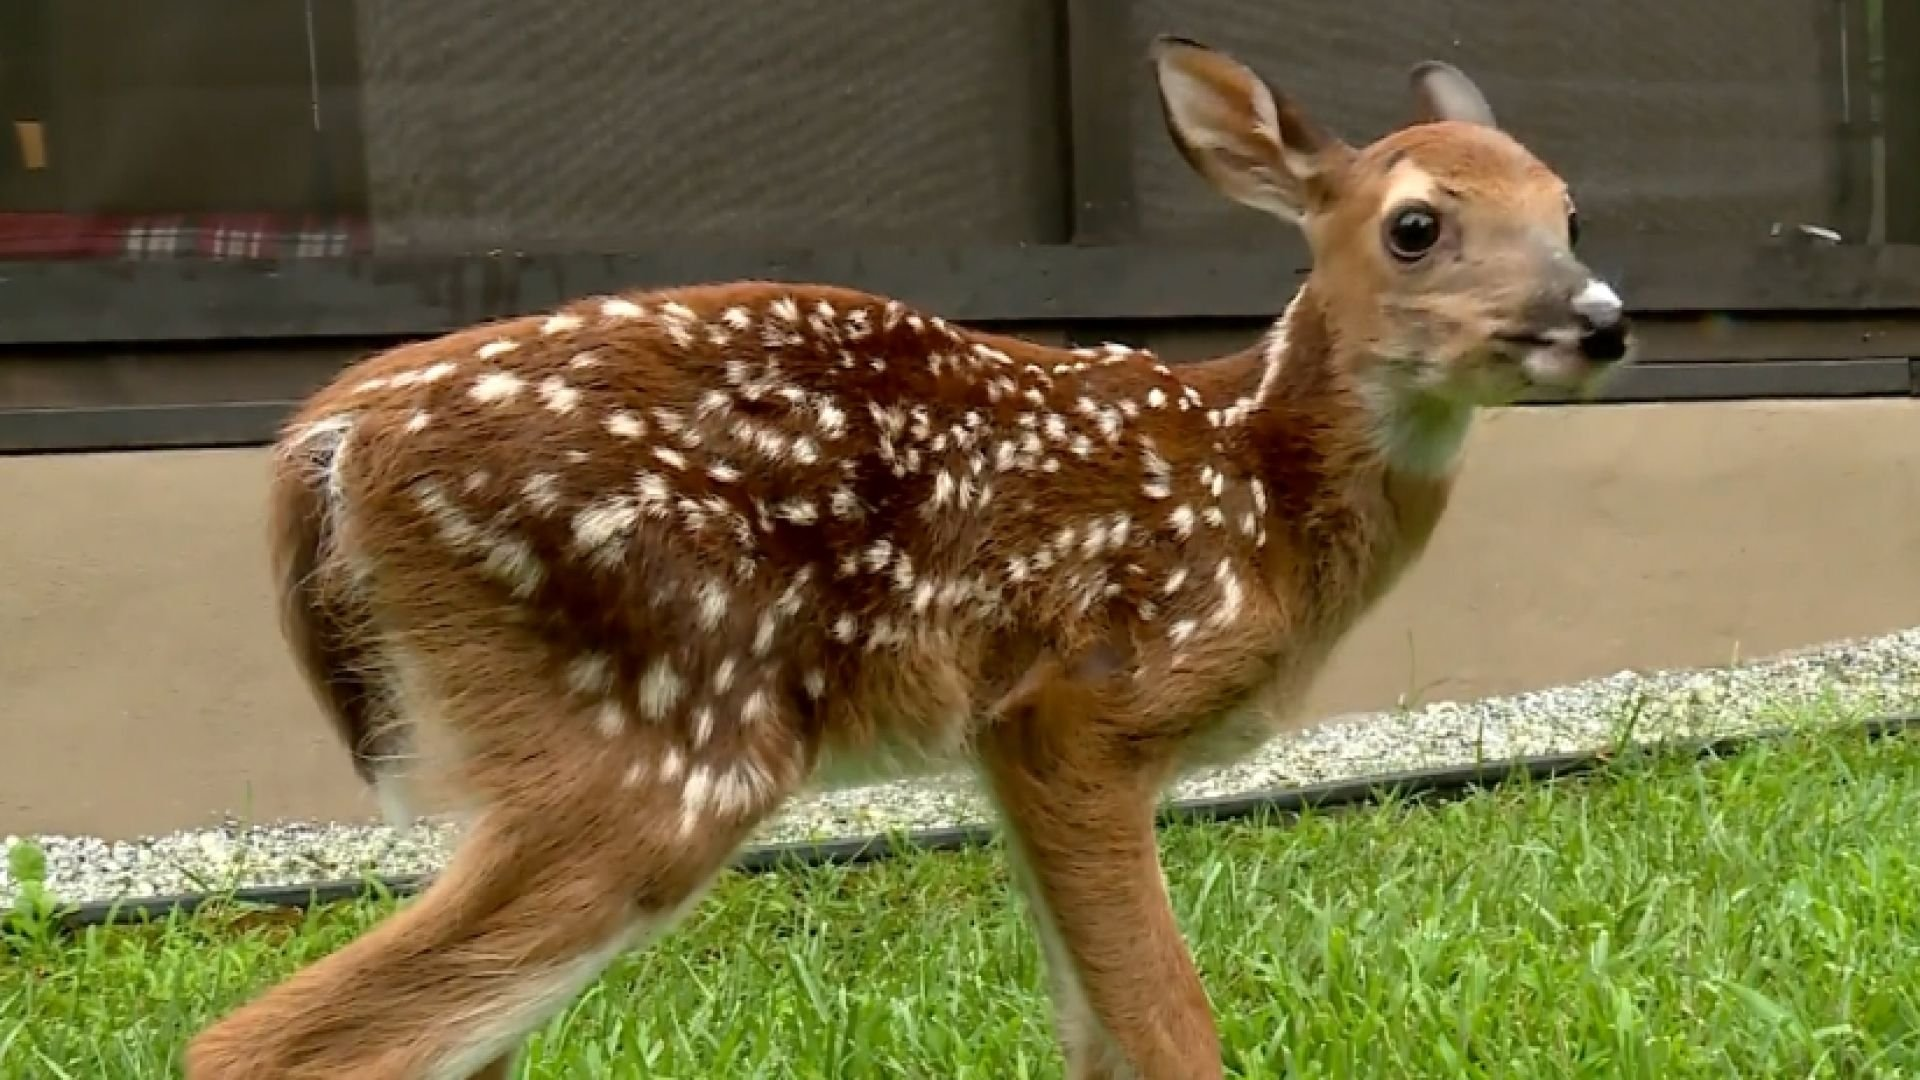 The mother of this fawn gave birth after being hit by a car.